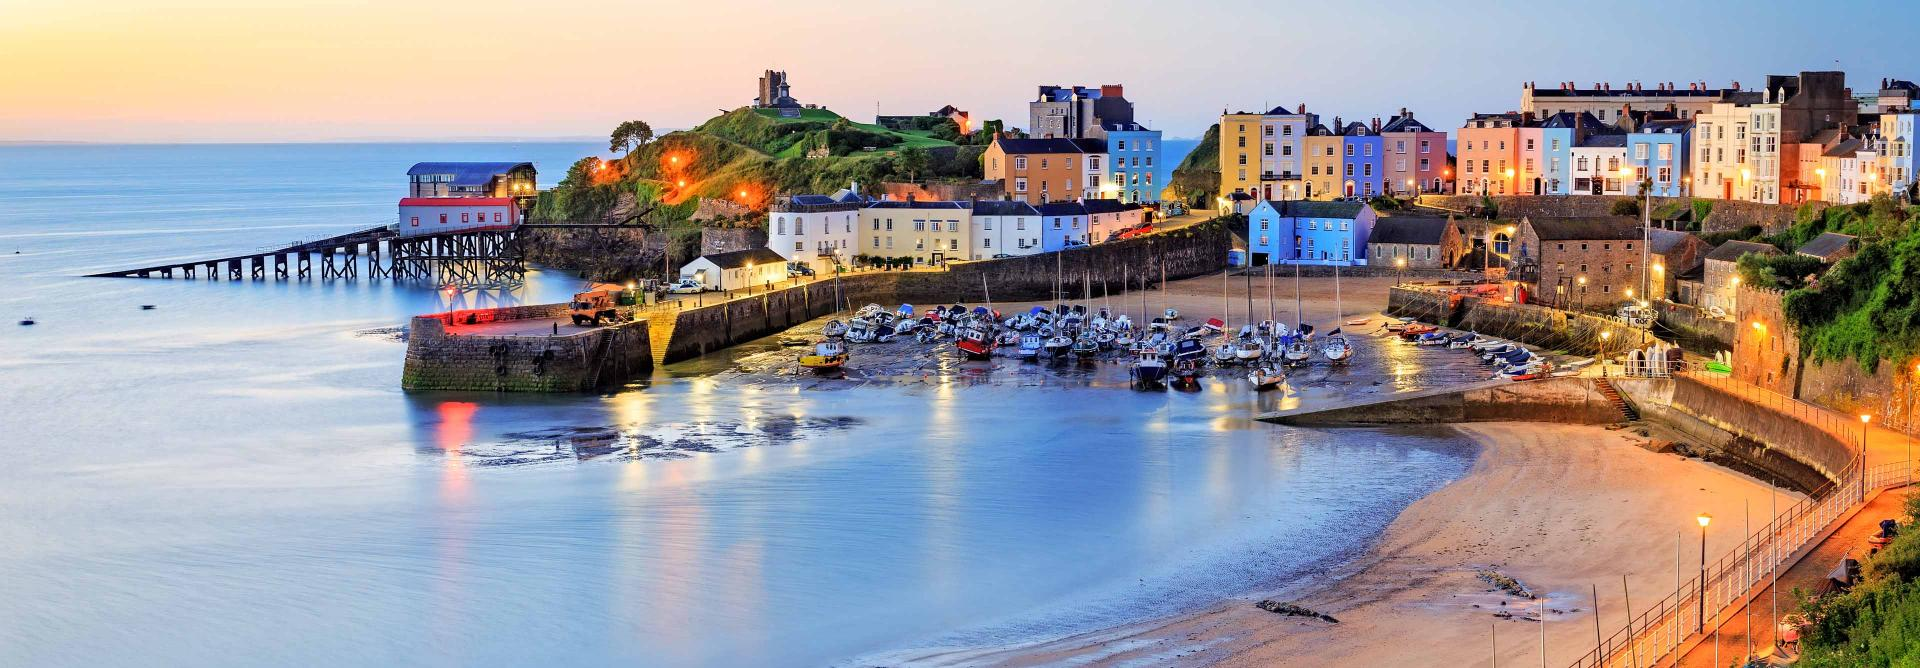 Pembrokeshire Tenby sunset